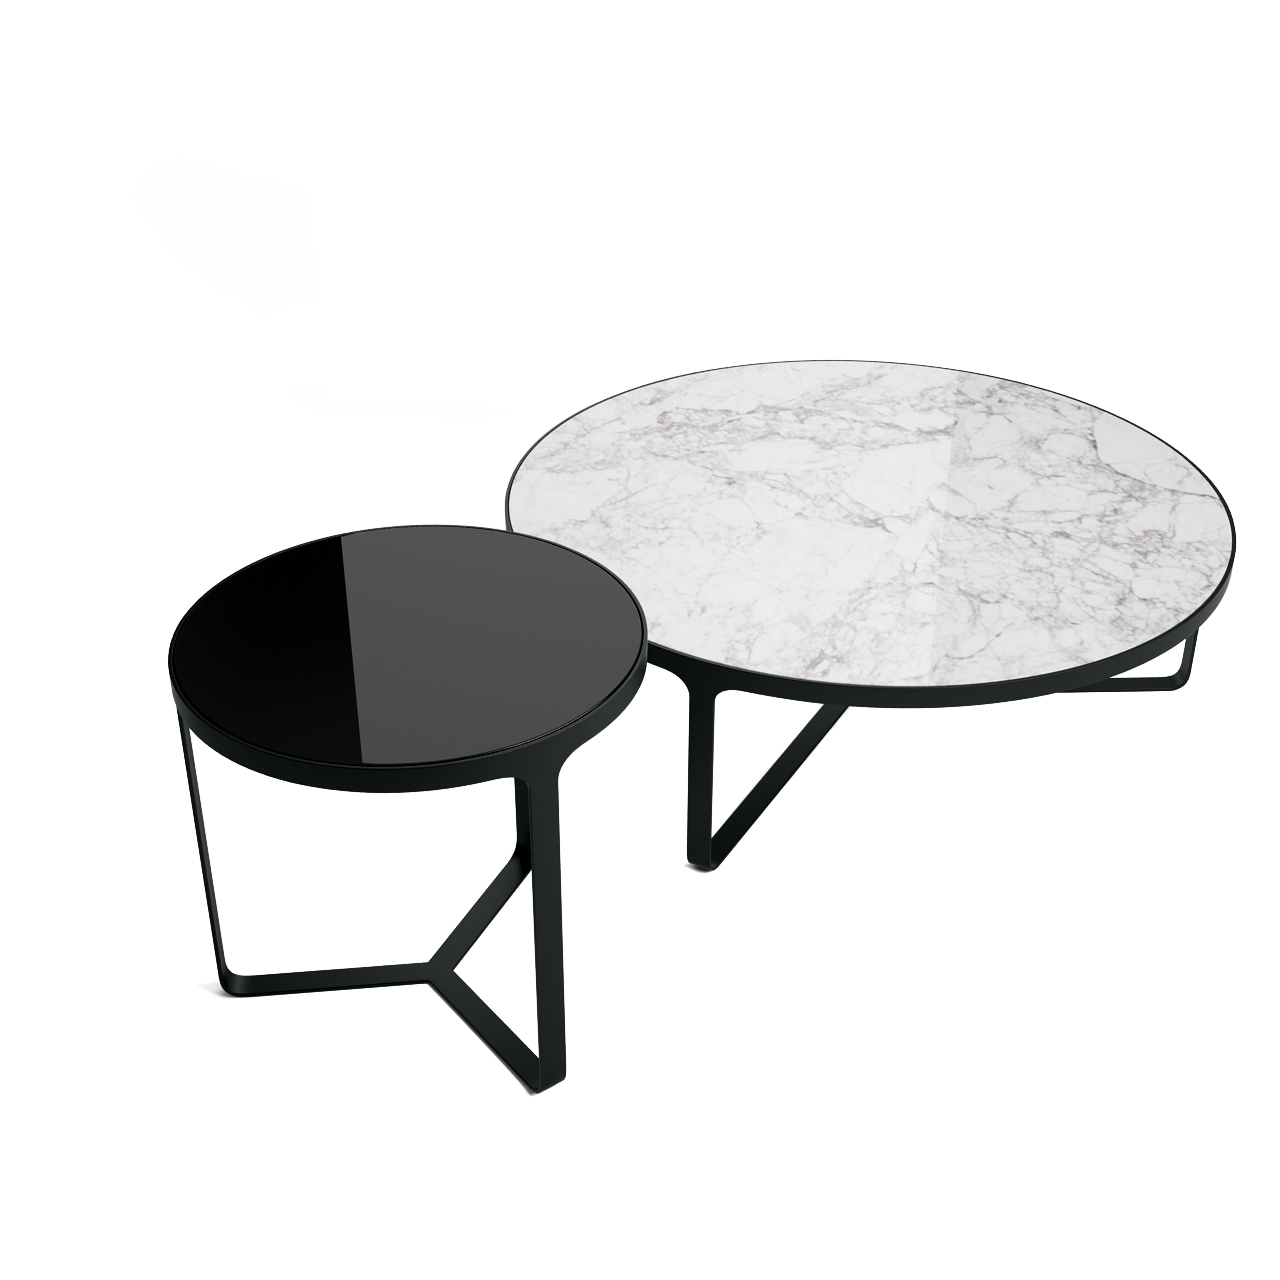 Cage Tables by Tacchini Dimensiva : cage tables by tacchini from dimensiva.com size 1280 x 1280 jpeg 273kB